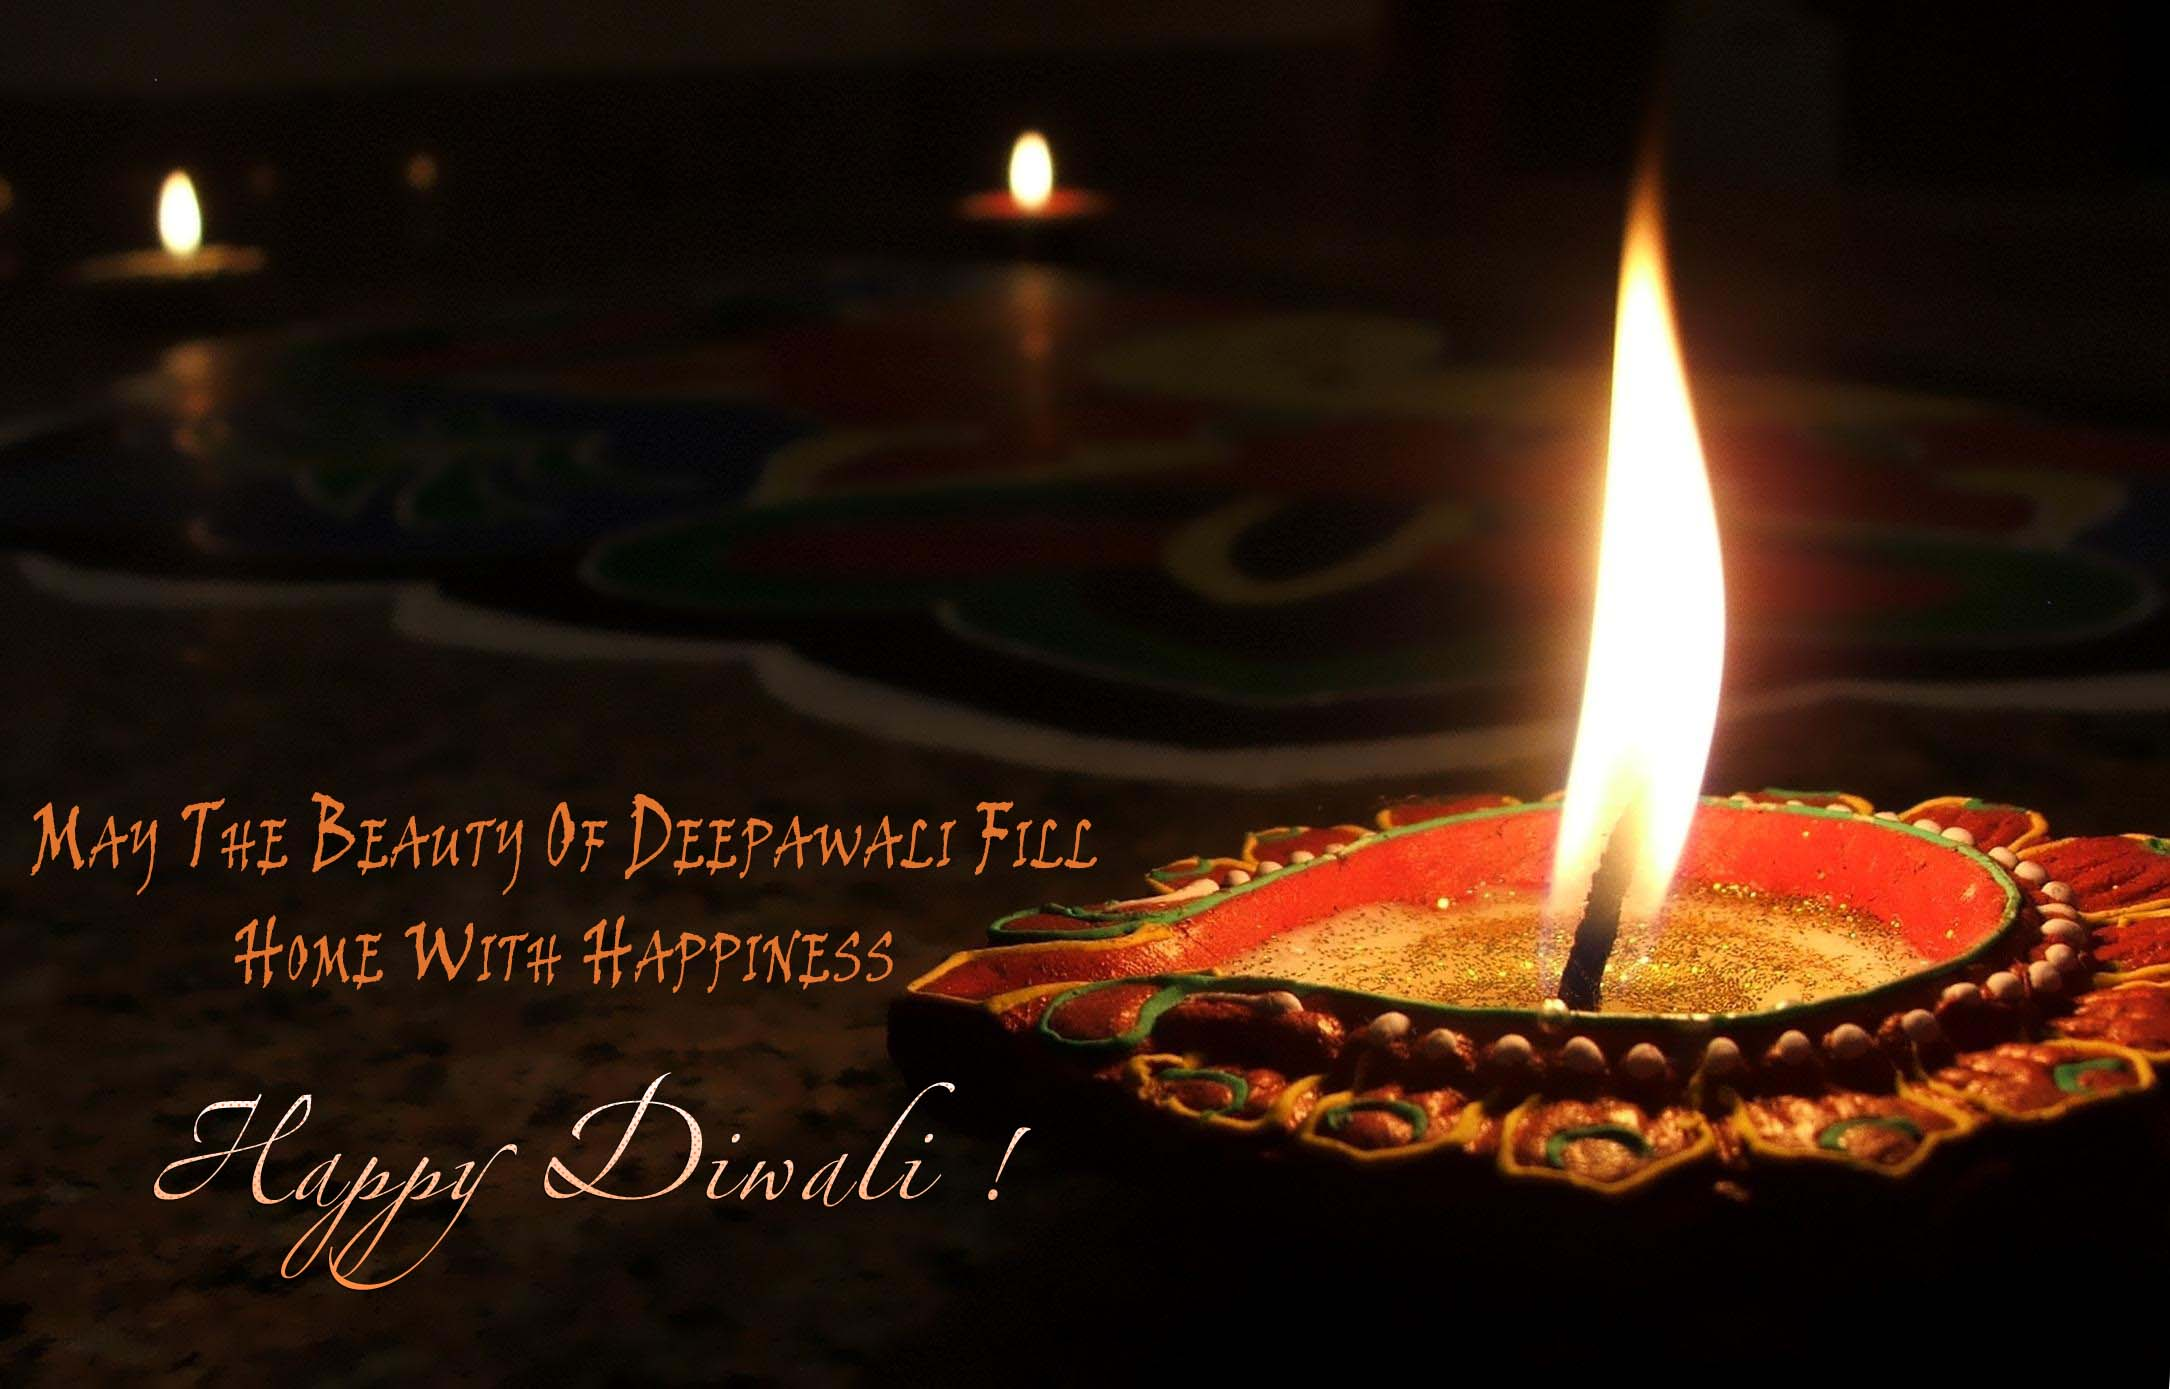 happy diwali festival greetings free images and photos download